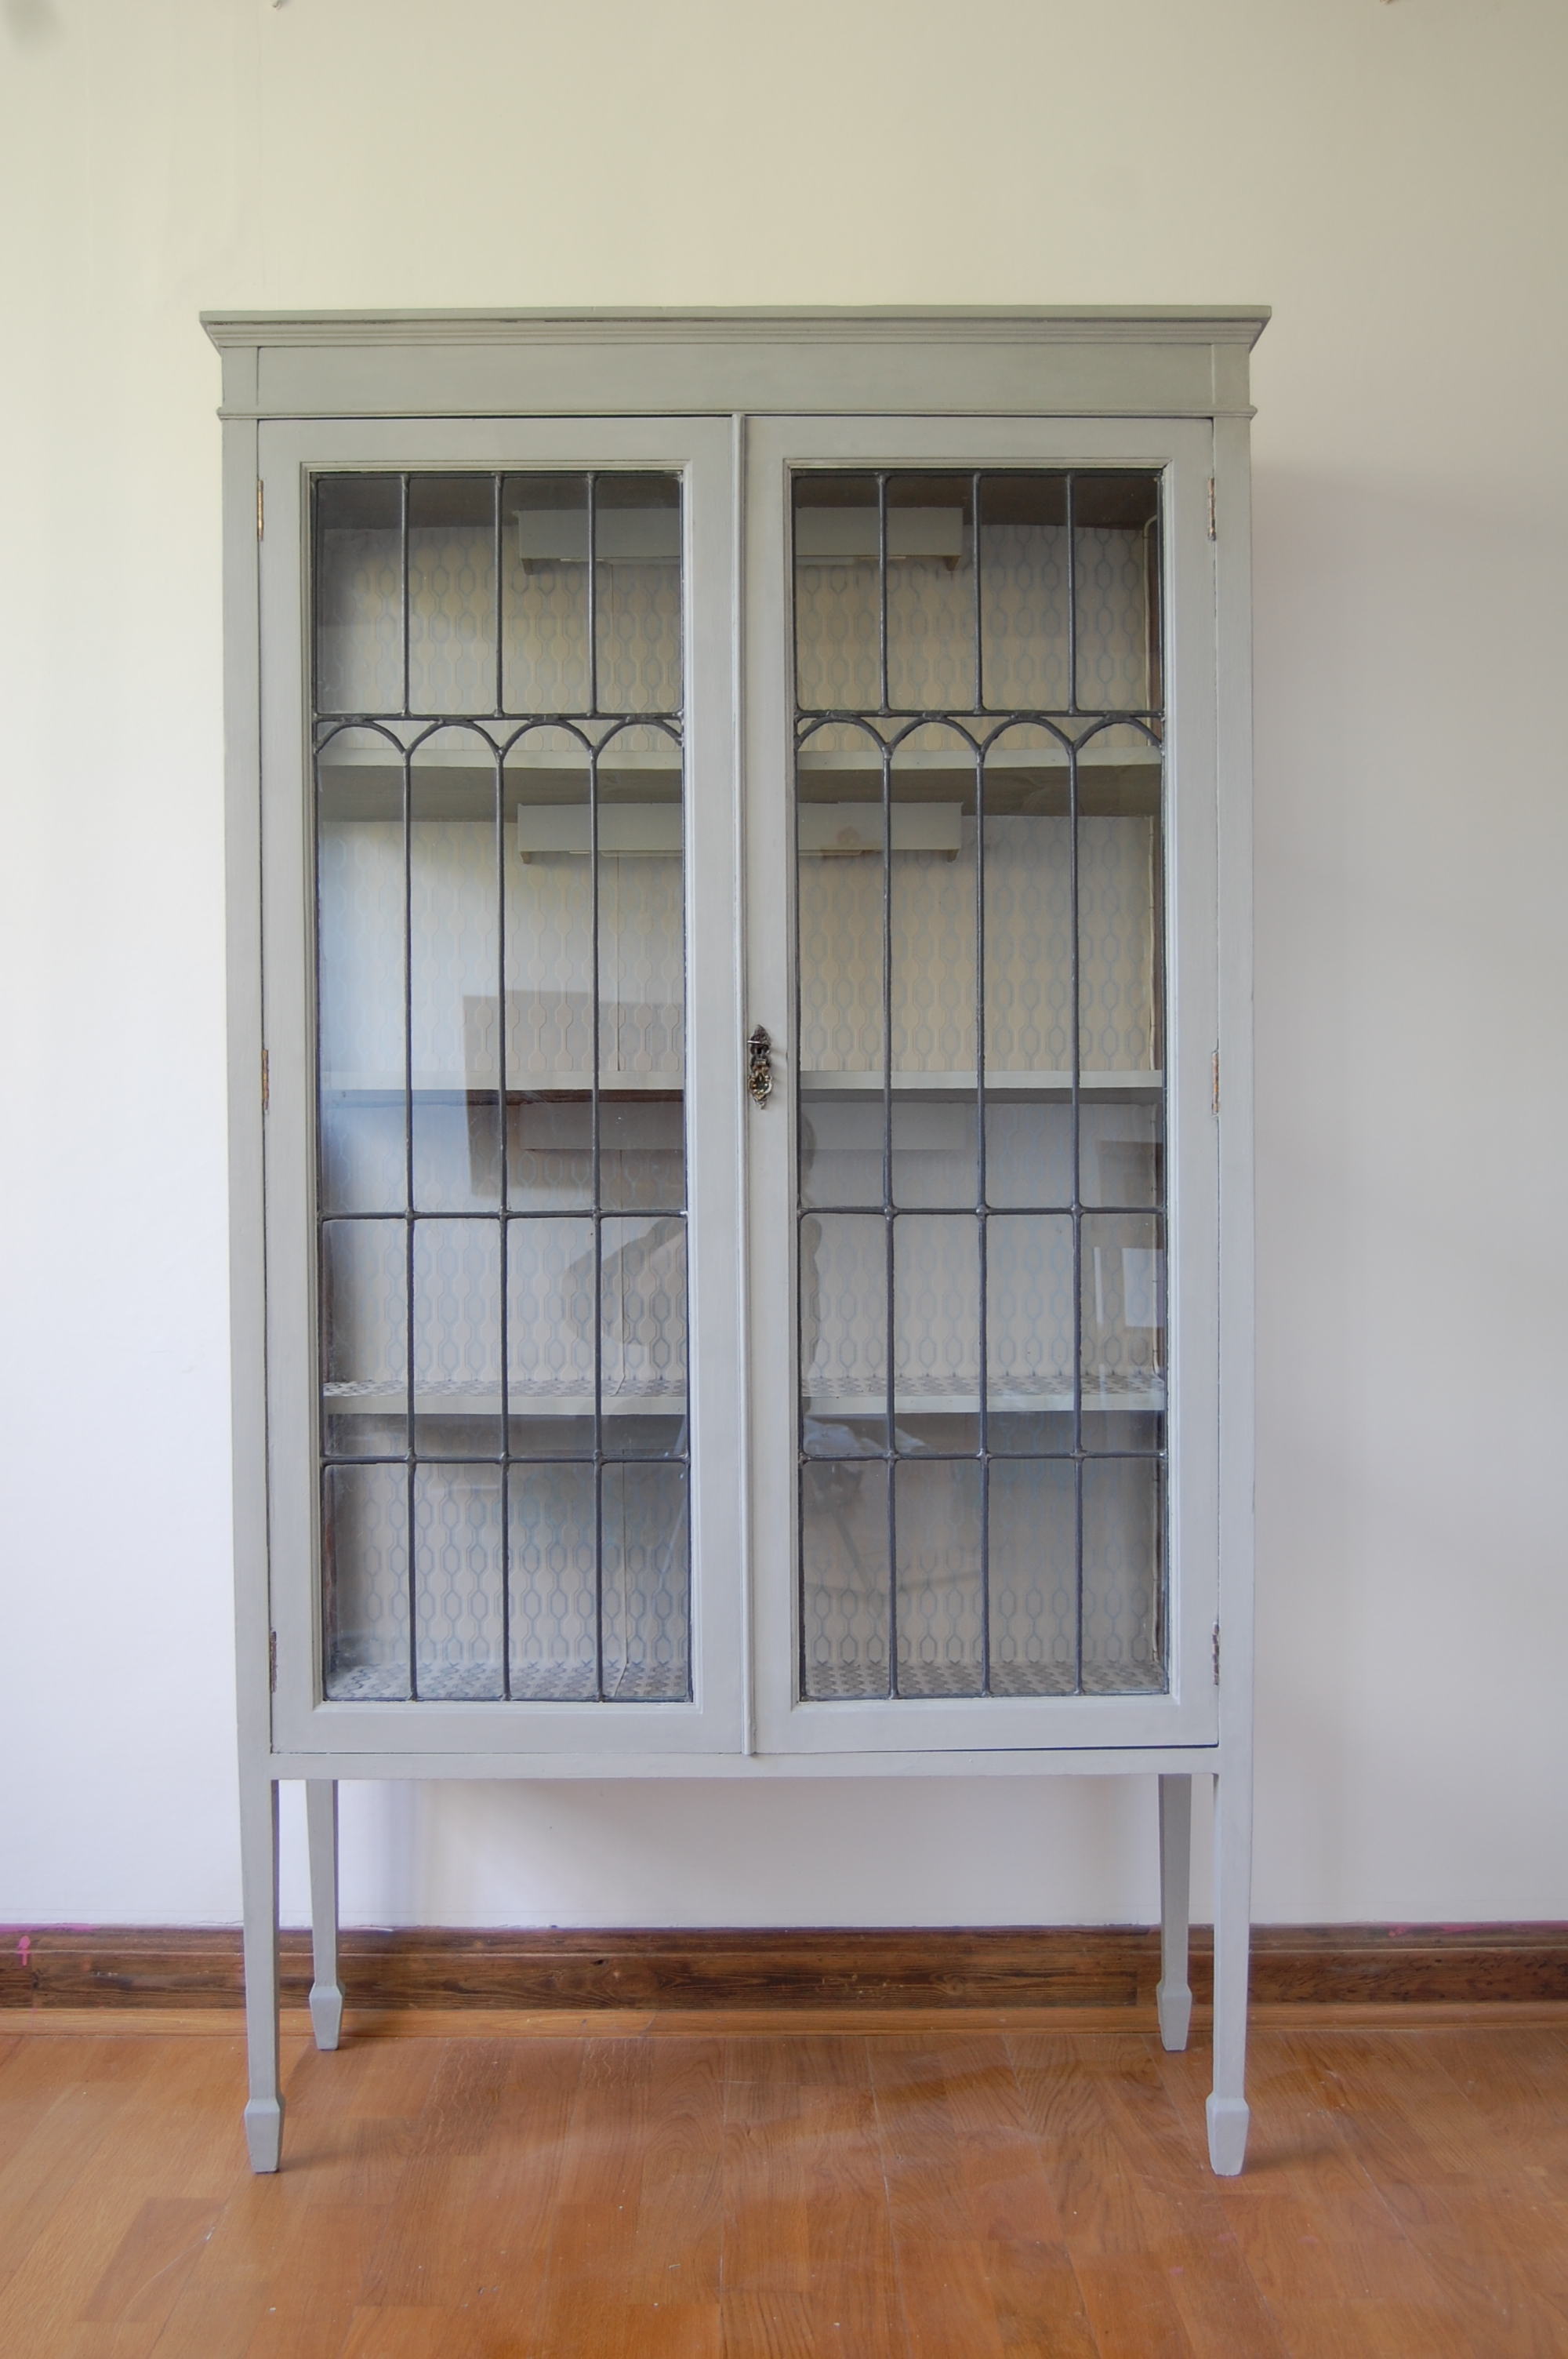 89 Dining Room Glass Display Cabinets Gray And Black With Size 2000 X 3008